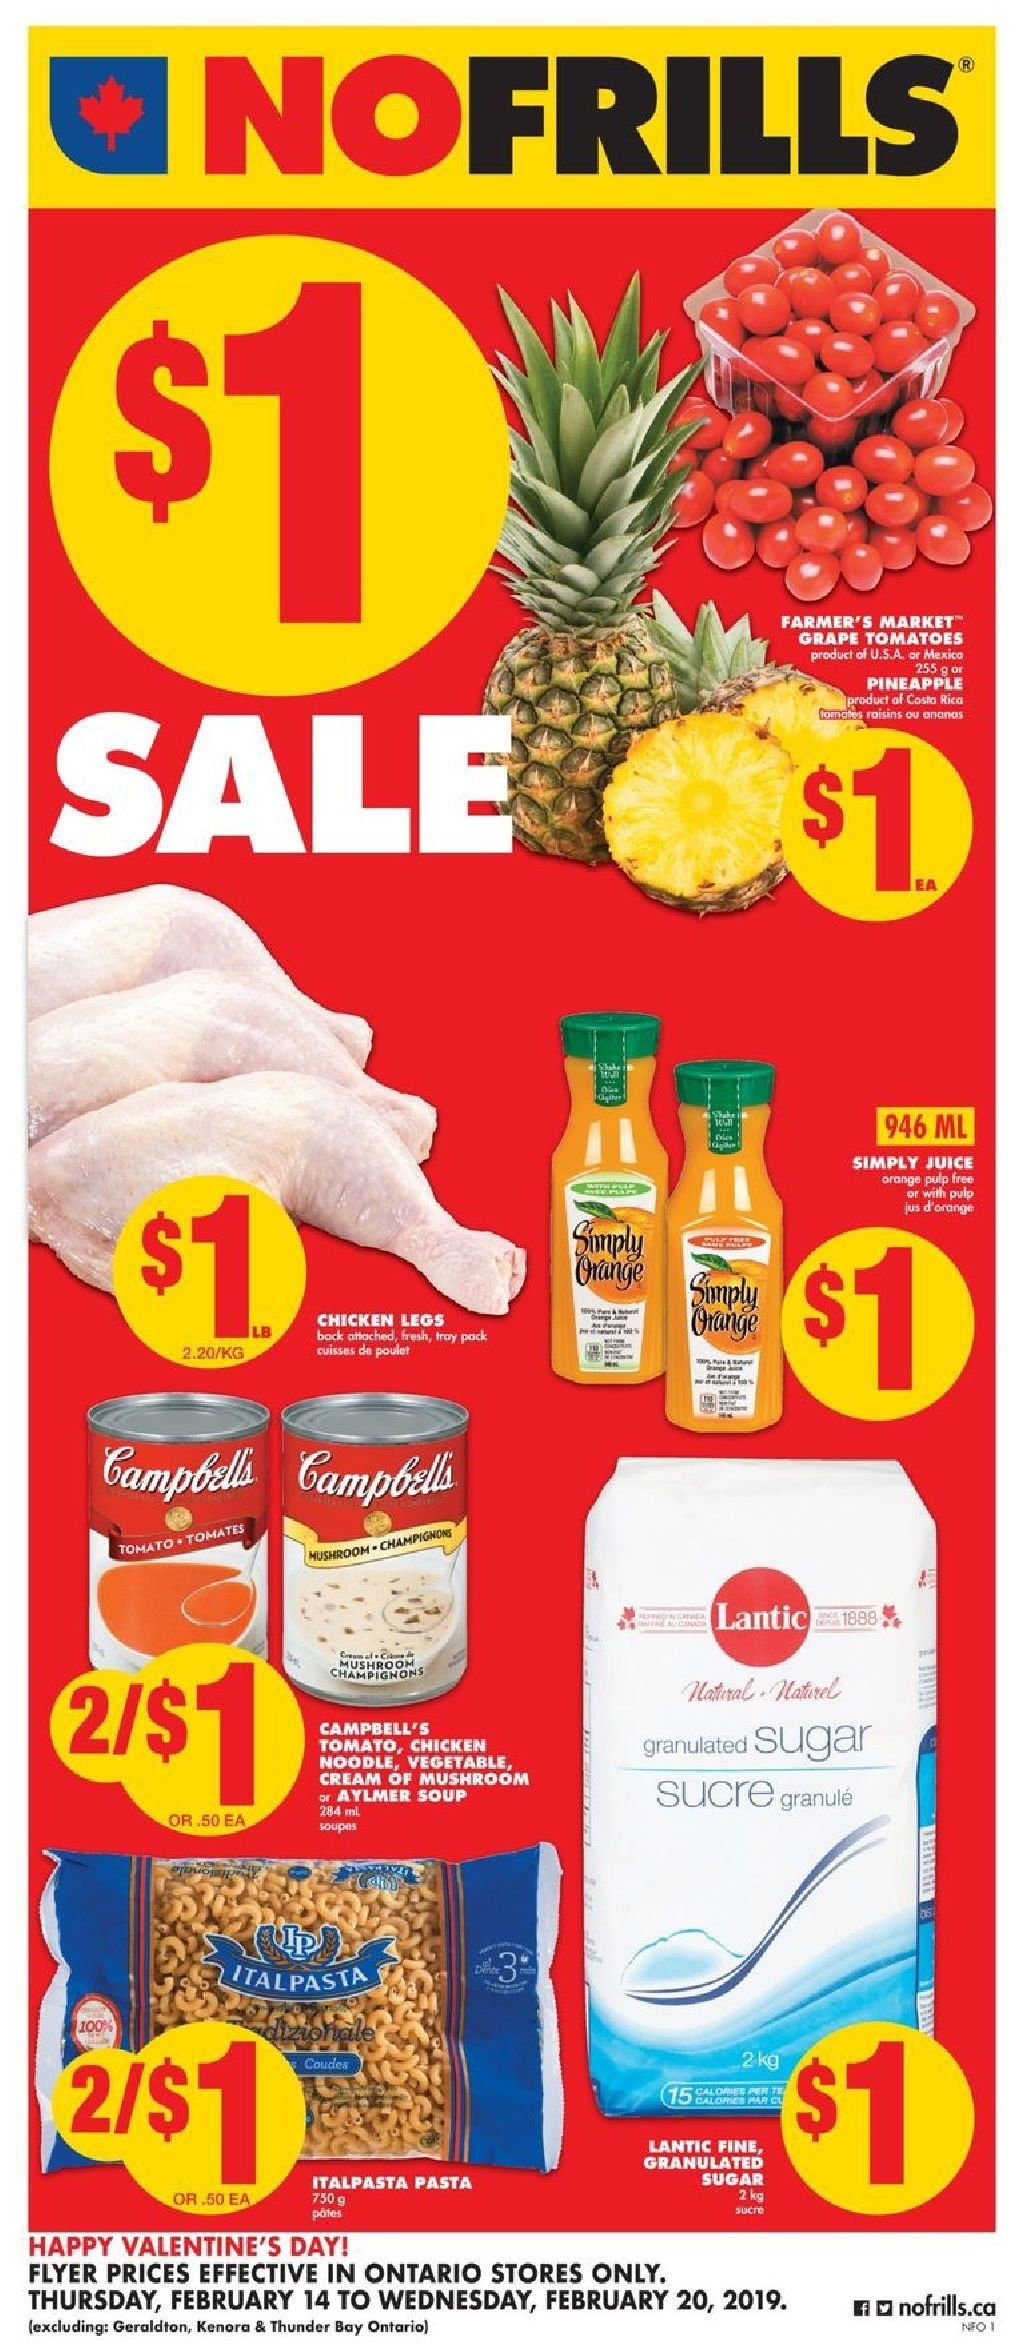 No Frills Flyer - February 14, 2019 - February 20, 2019 - Sales products - campbell's, cream, granulated sugar, grapes, sugar, tomatoes, tray, pineapple, chicken, chicken legs, noodle, juice, soup, vegetable, mushroom, pasta, tomates, poulet, champignon, ange, sucre, orange, jus. Page 1.